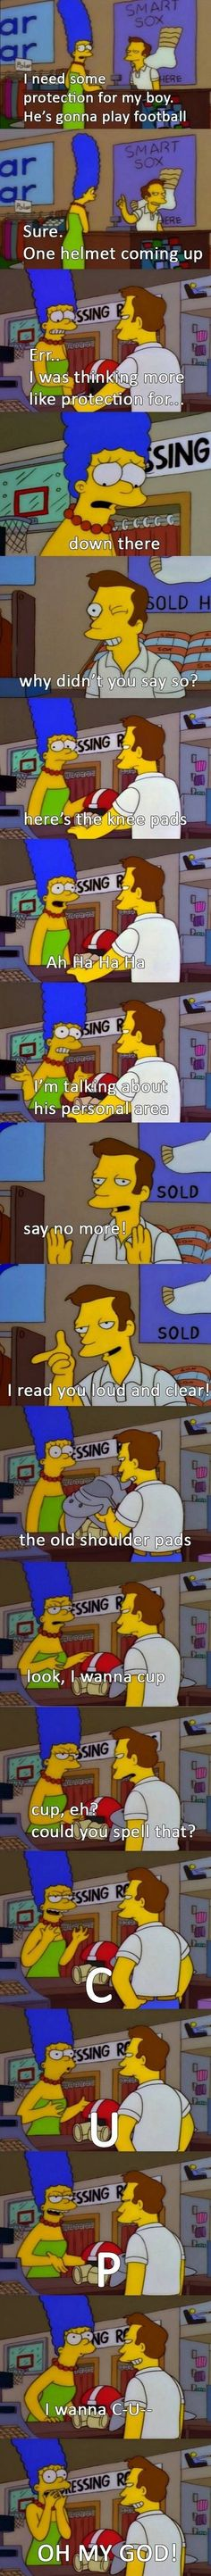 The Simpsons lol Simpsons Funny, Simpsons Quotes, The Simpsons, Futurama, Funny Jokes, Hilarious, Homer Simpson, My Guy, Best Memes